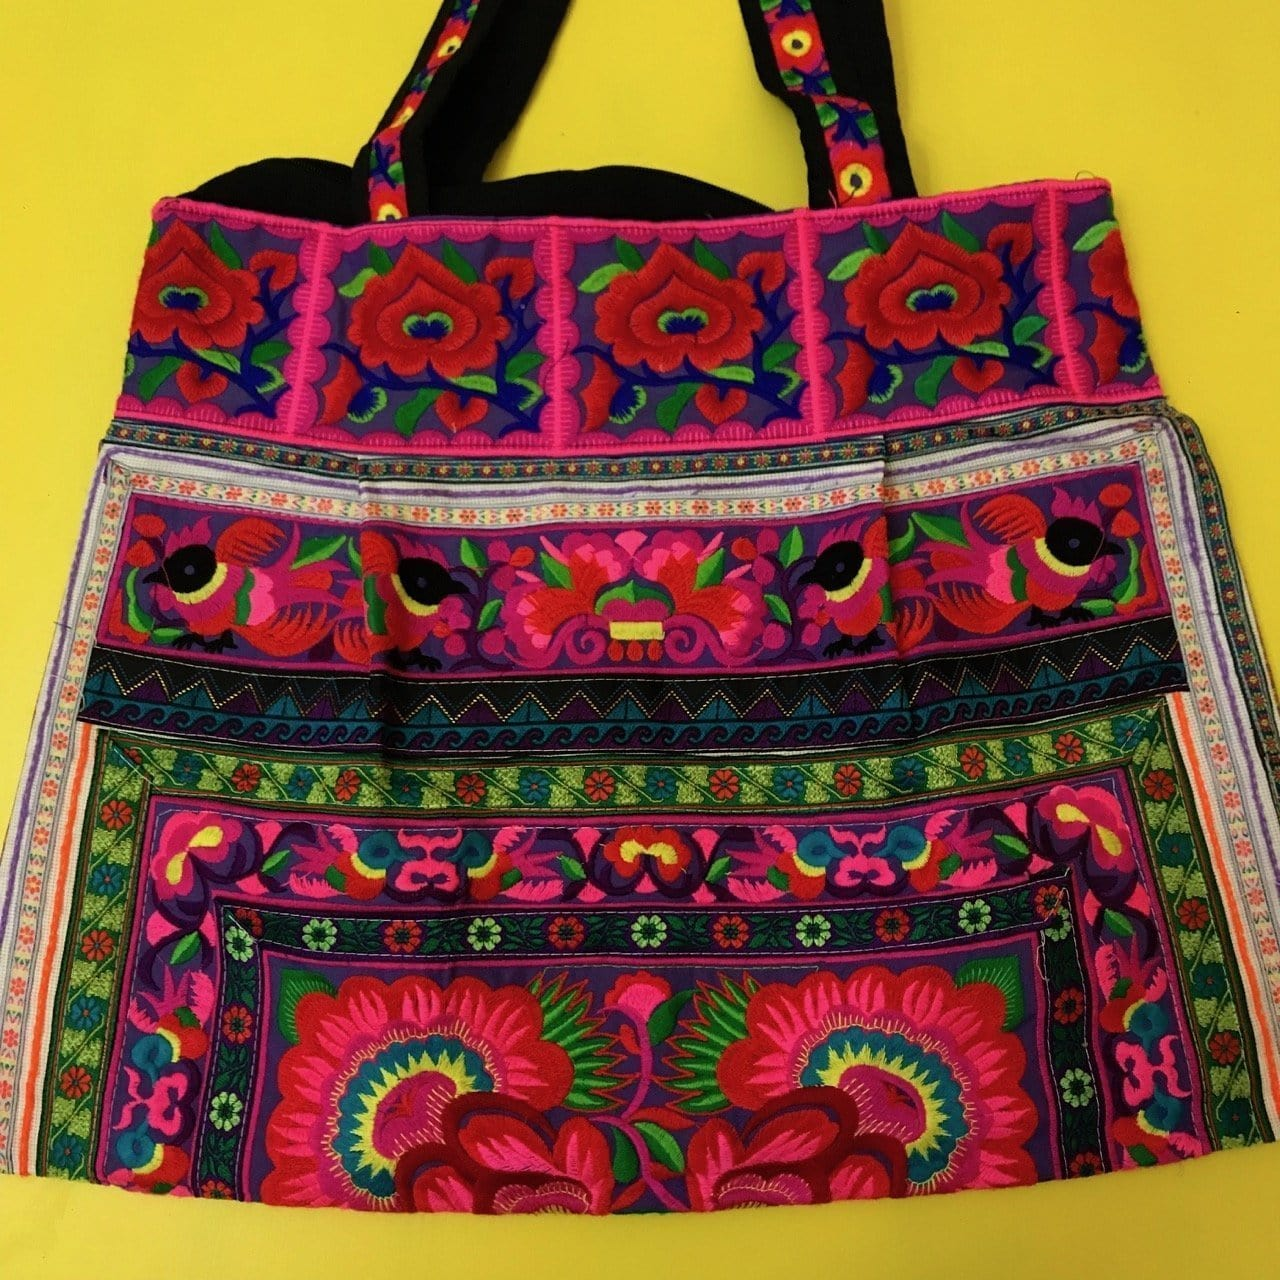 Hmong embroidered XL bag